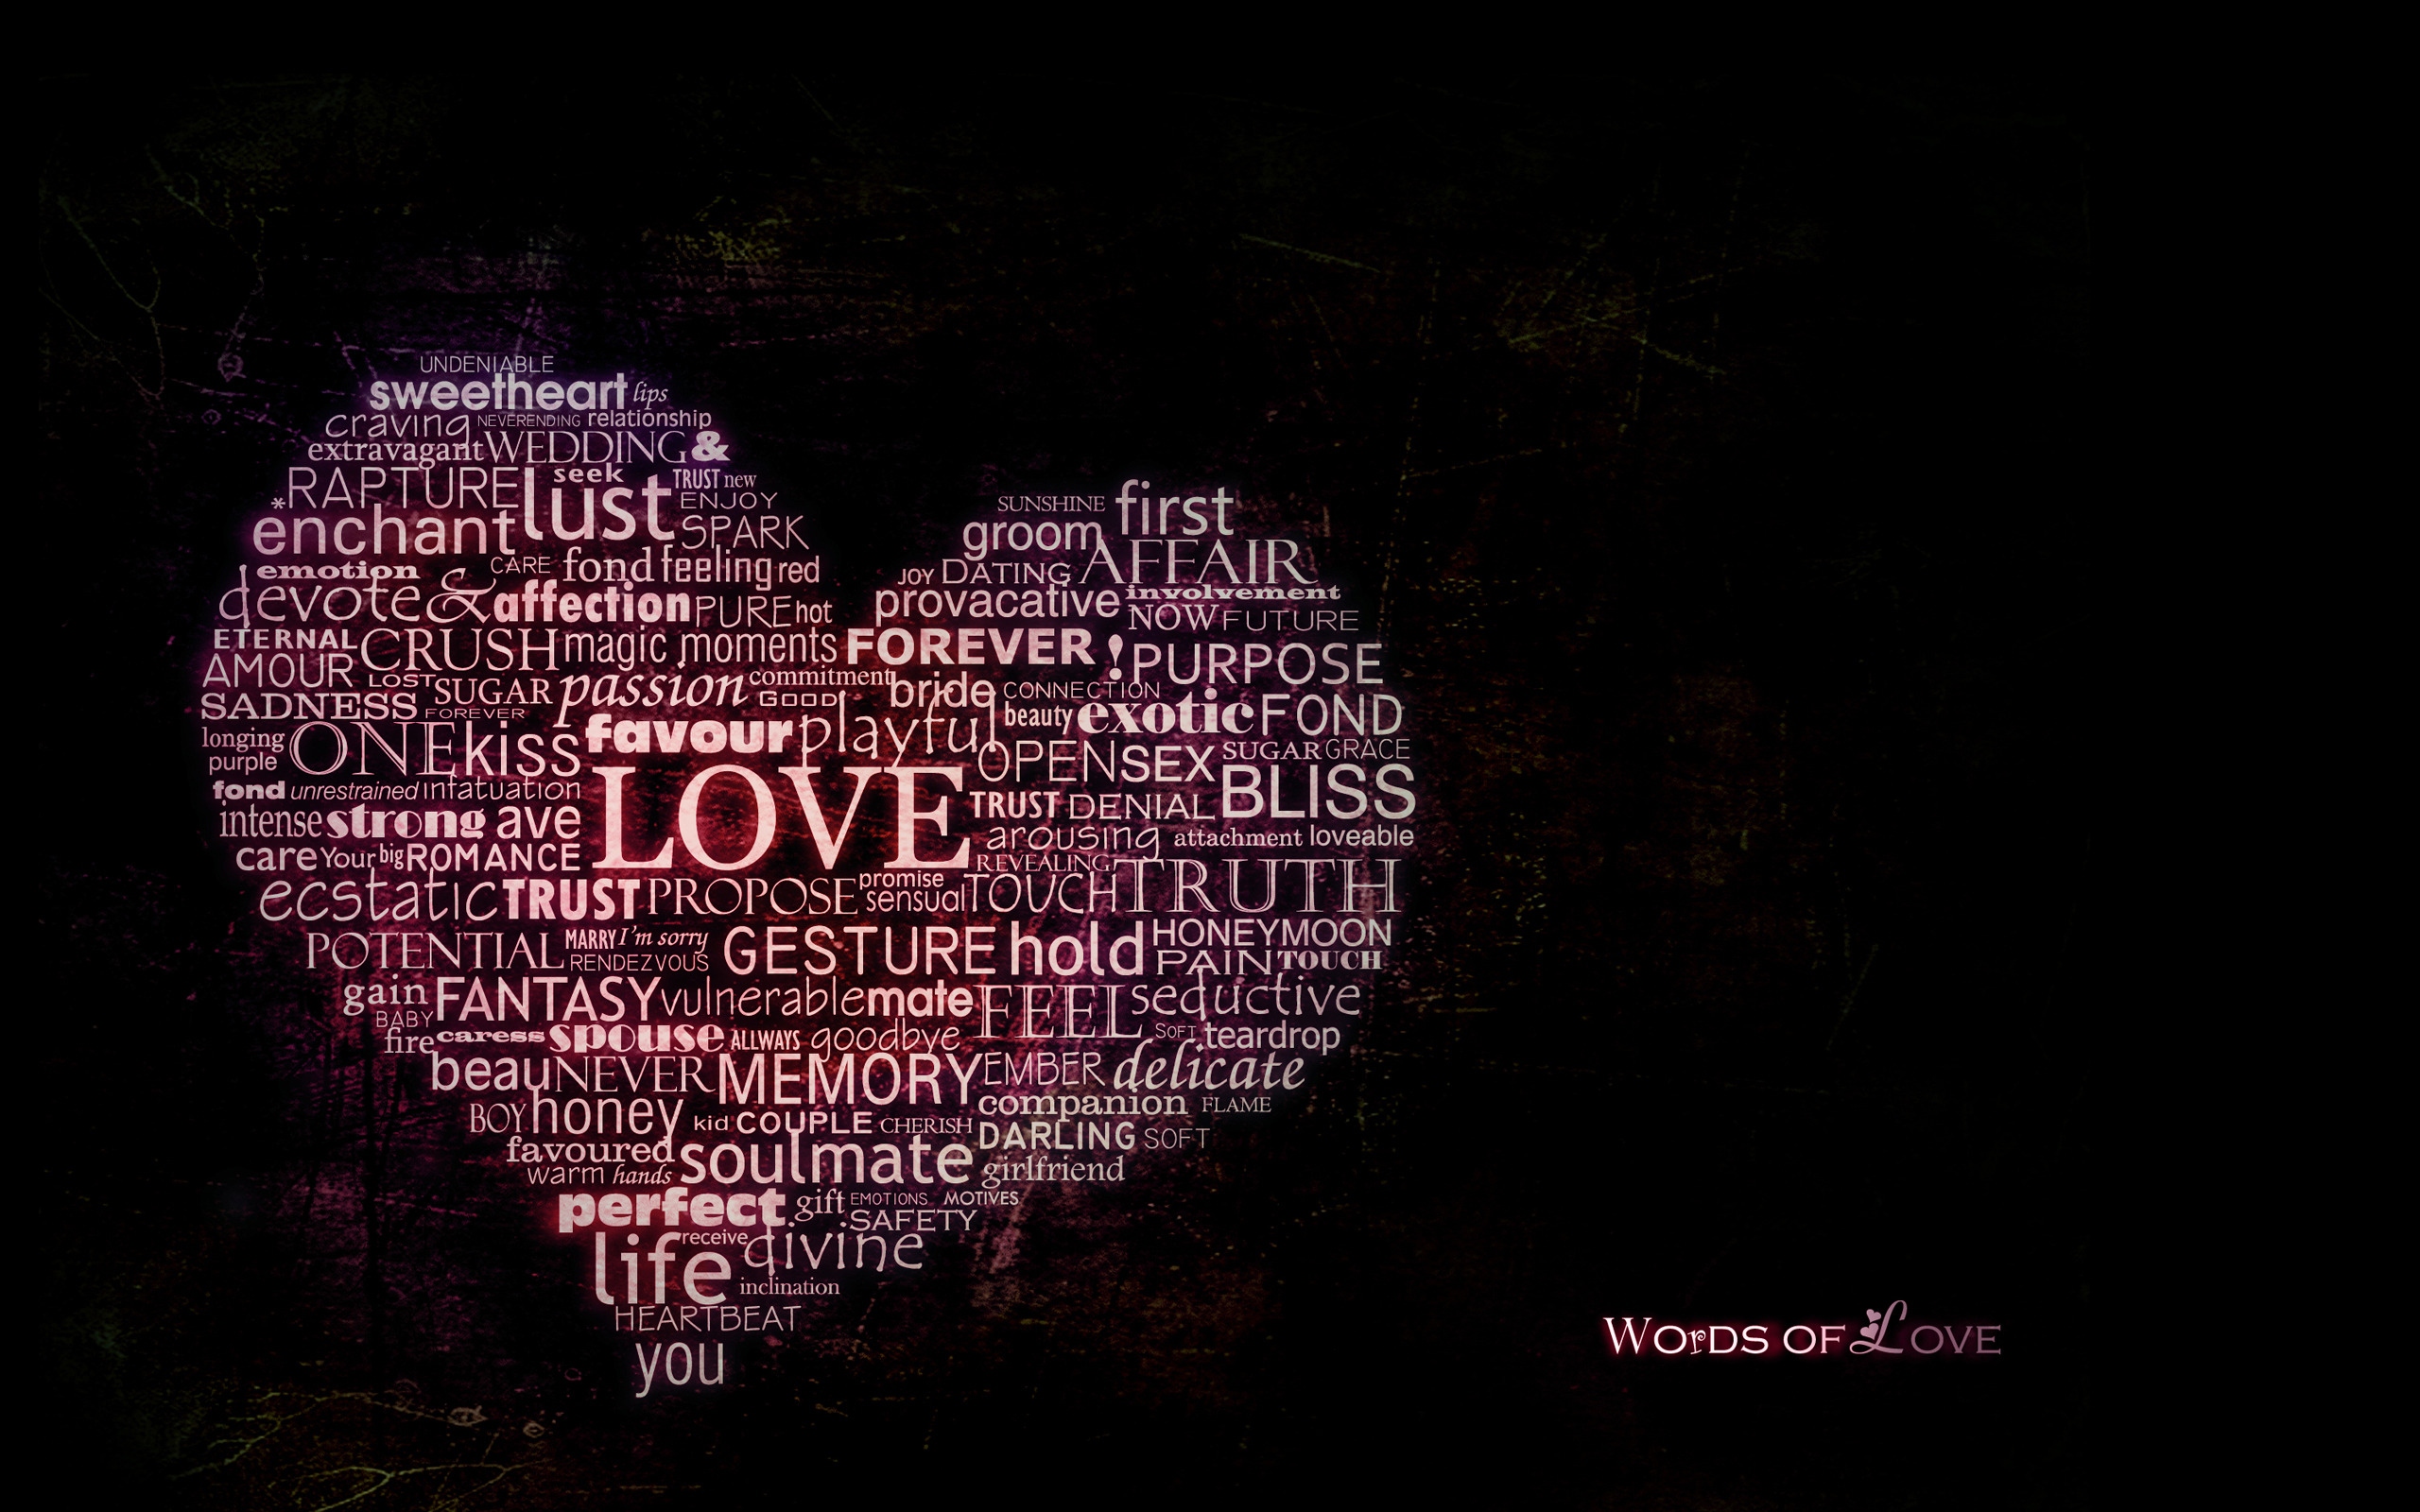 Hd Wallpaper Of Love For Laptop : Love Wallpaper Laptop HD #4110 Wallpaper WallDiskPaper